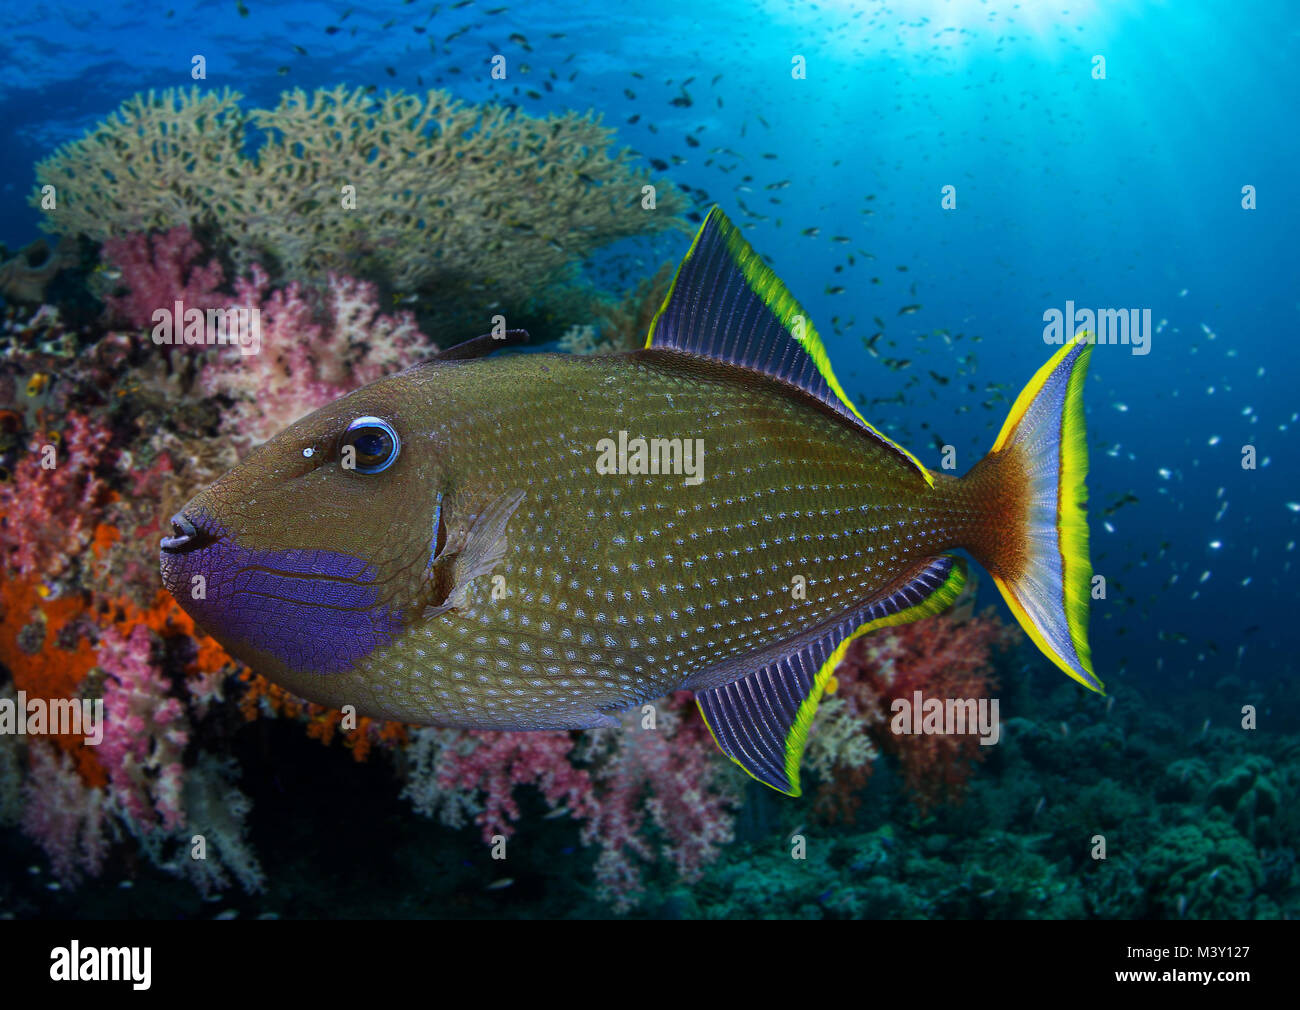 Gilded triggerfish or Blue-throated Triggerfish, Xanthichthys auromarginatus. Mature male swimming on coral reef. - Stock Image